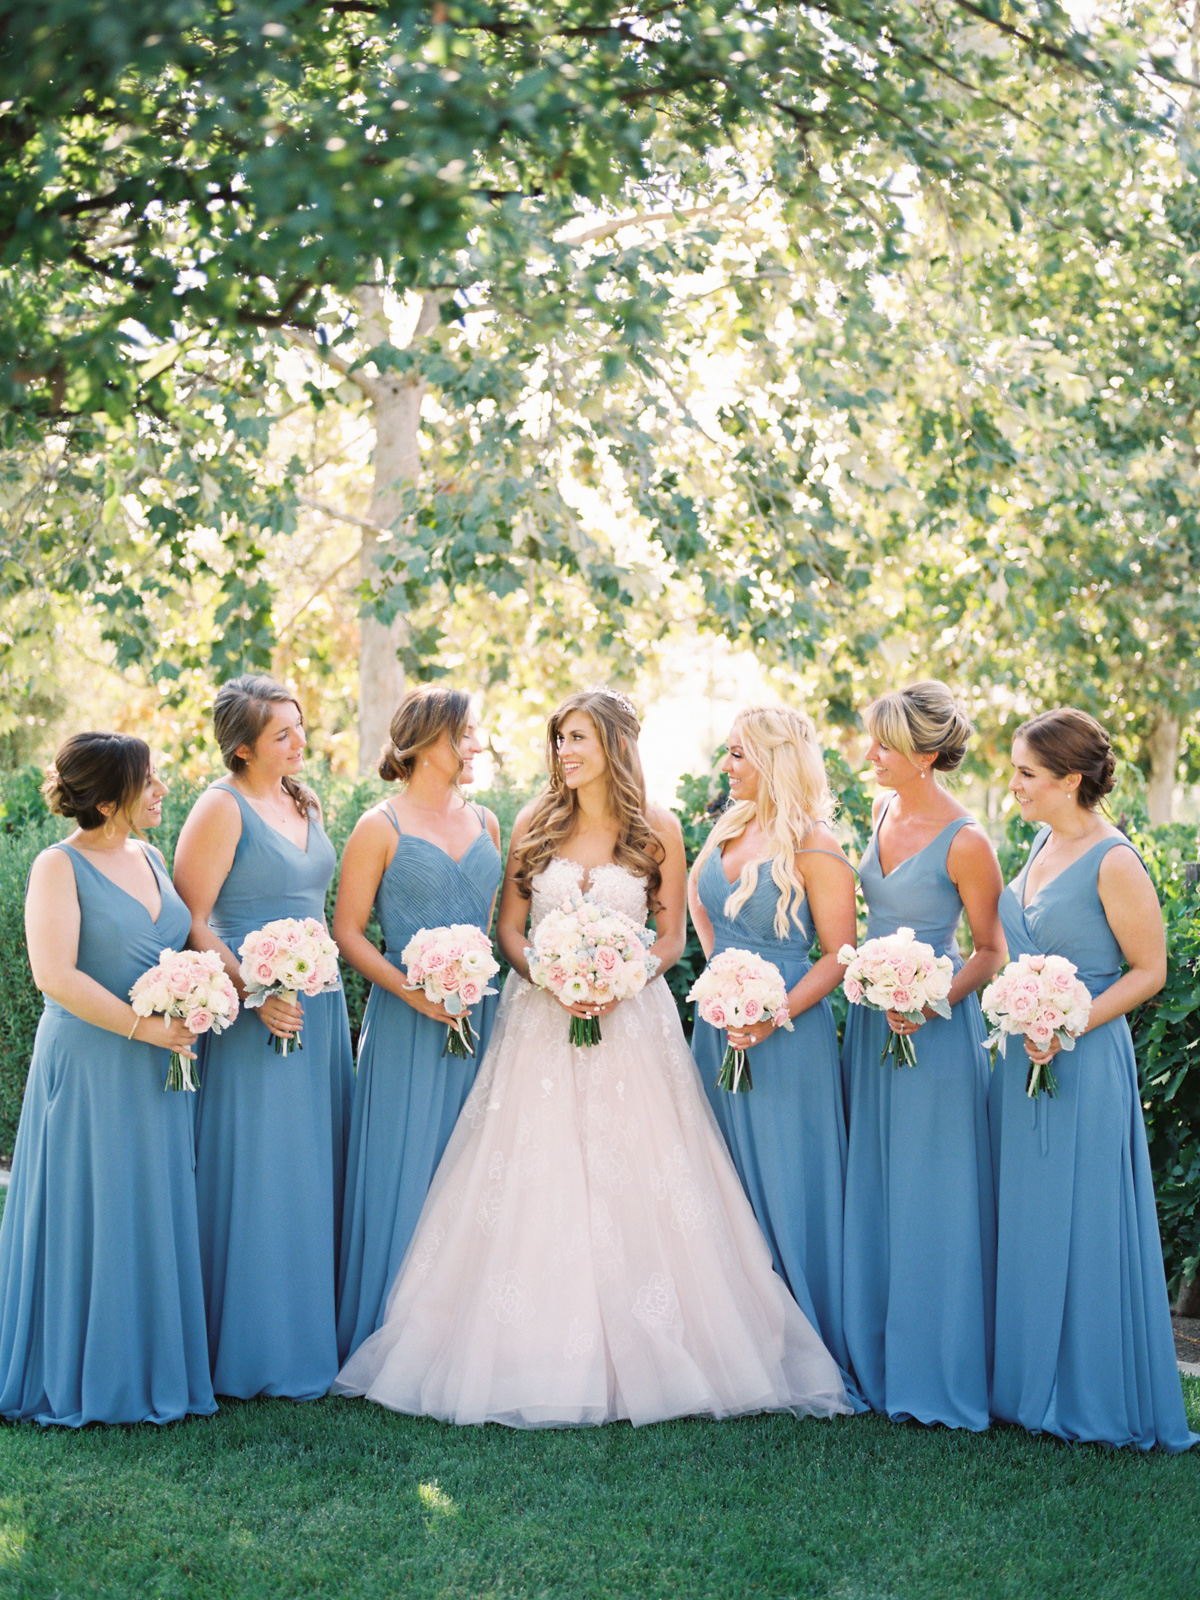 Bride with bridesmaids in blue   Harrison & Jocelyne's gorgeous Temecula wedding at Wiens Family Cellars captured by Betsy & John Photography